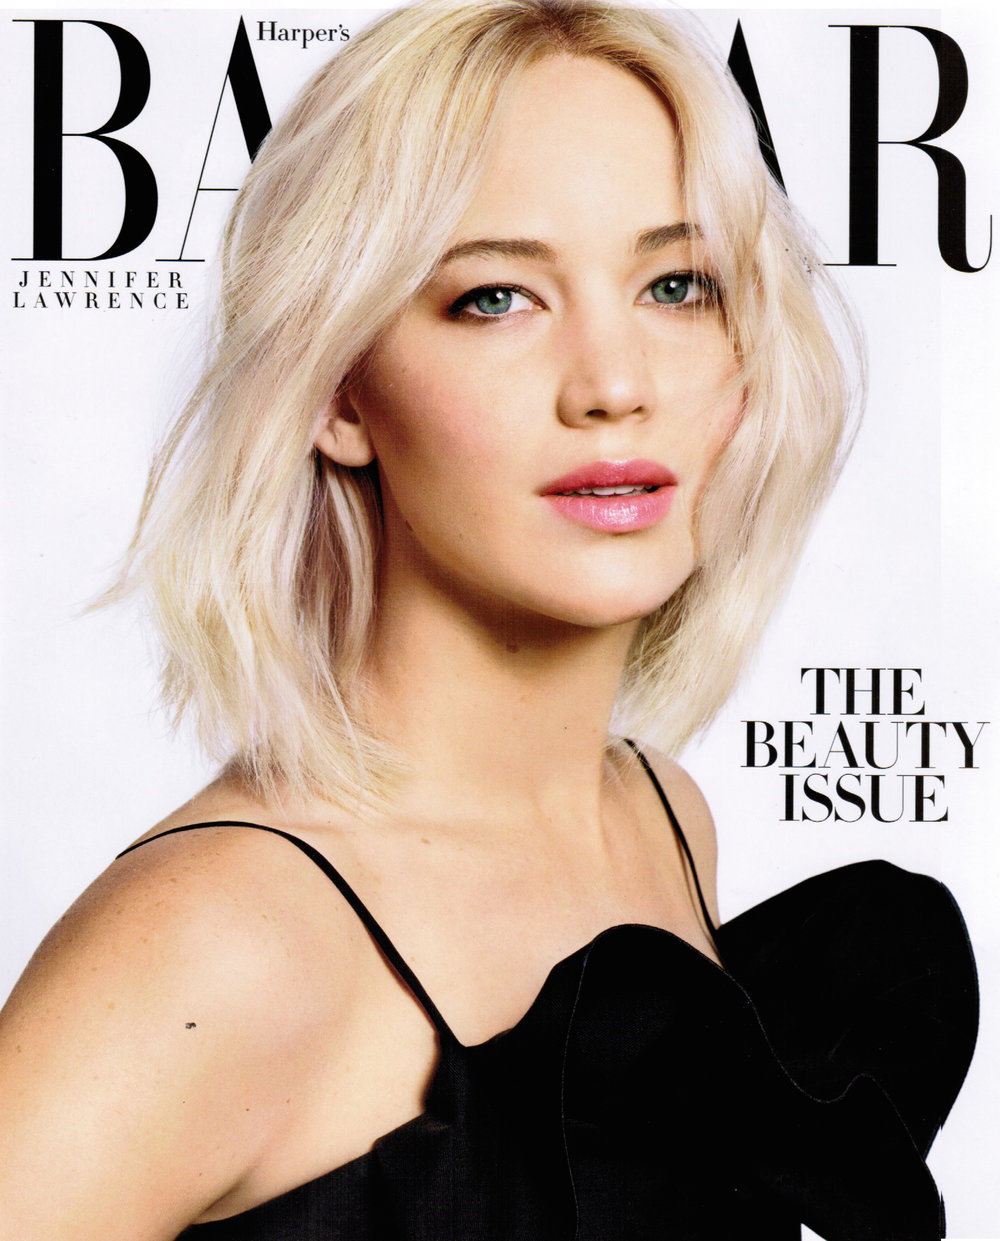 Harpers Bazaar May 2016-cover.jpeg